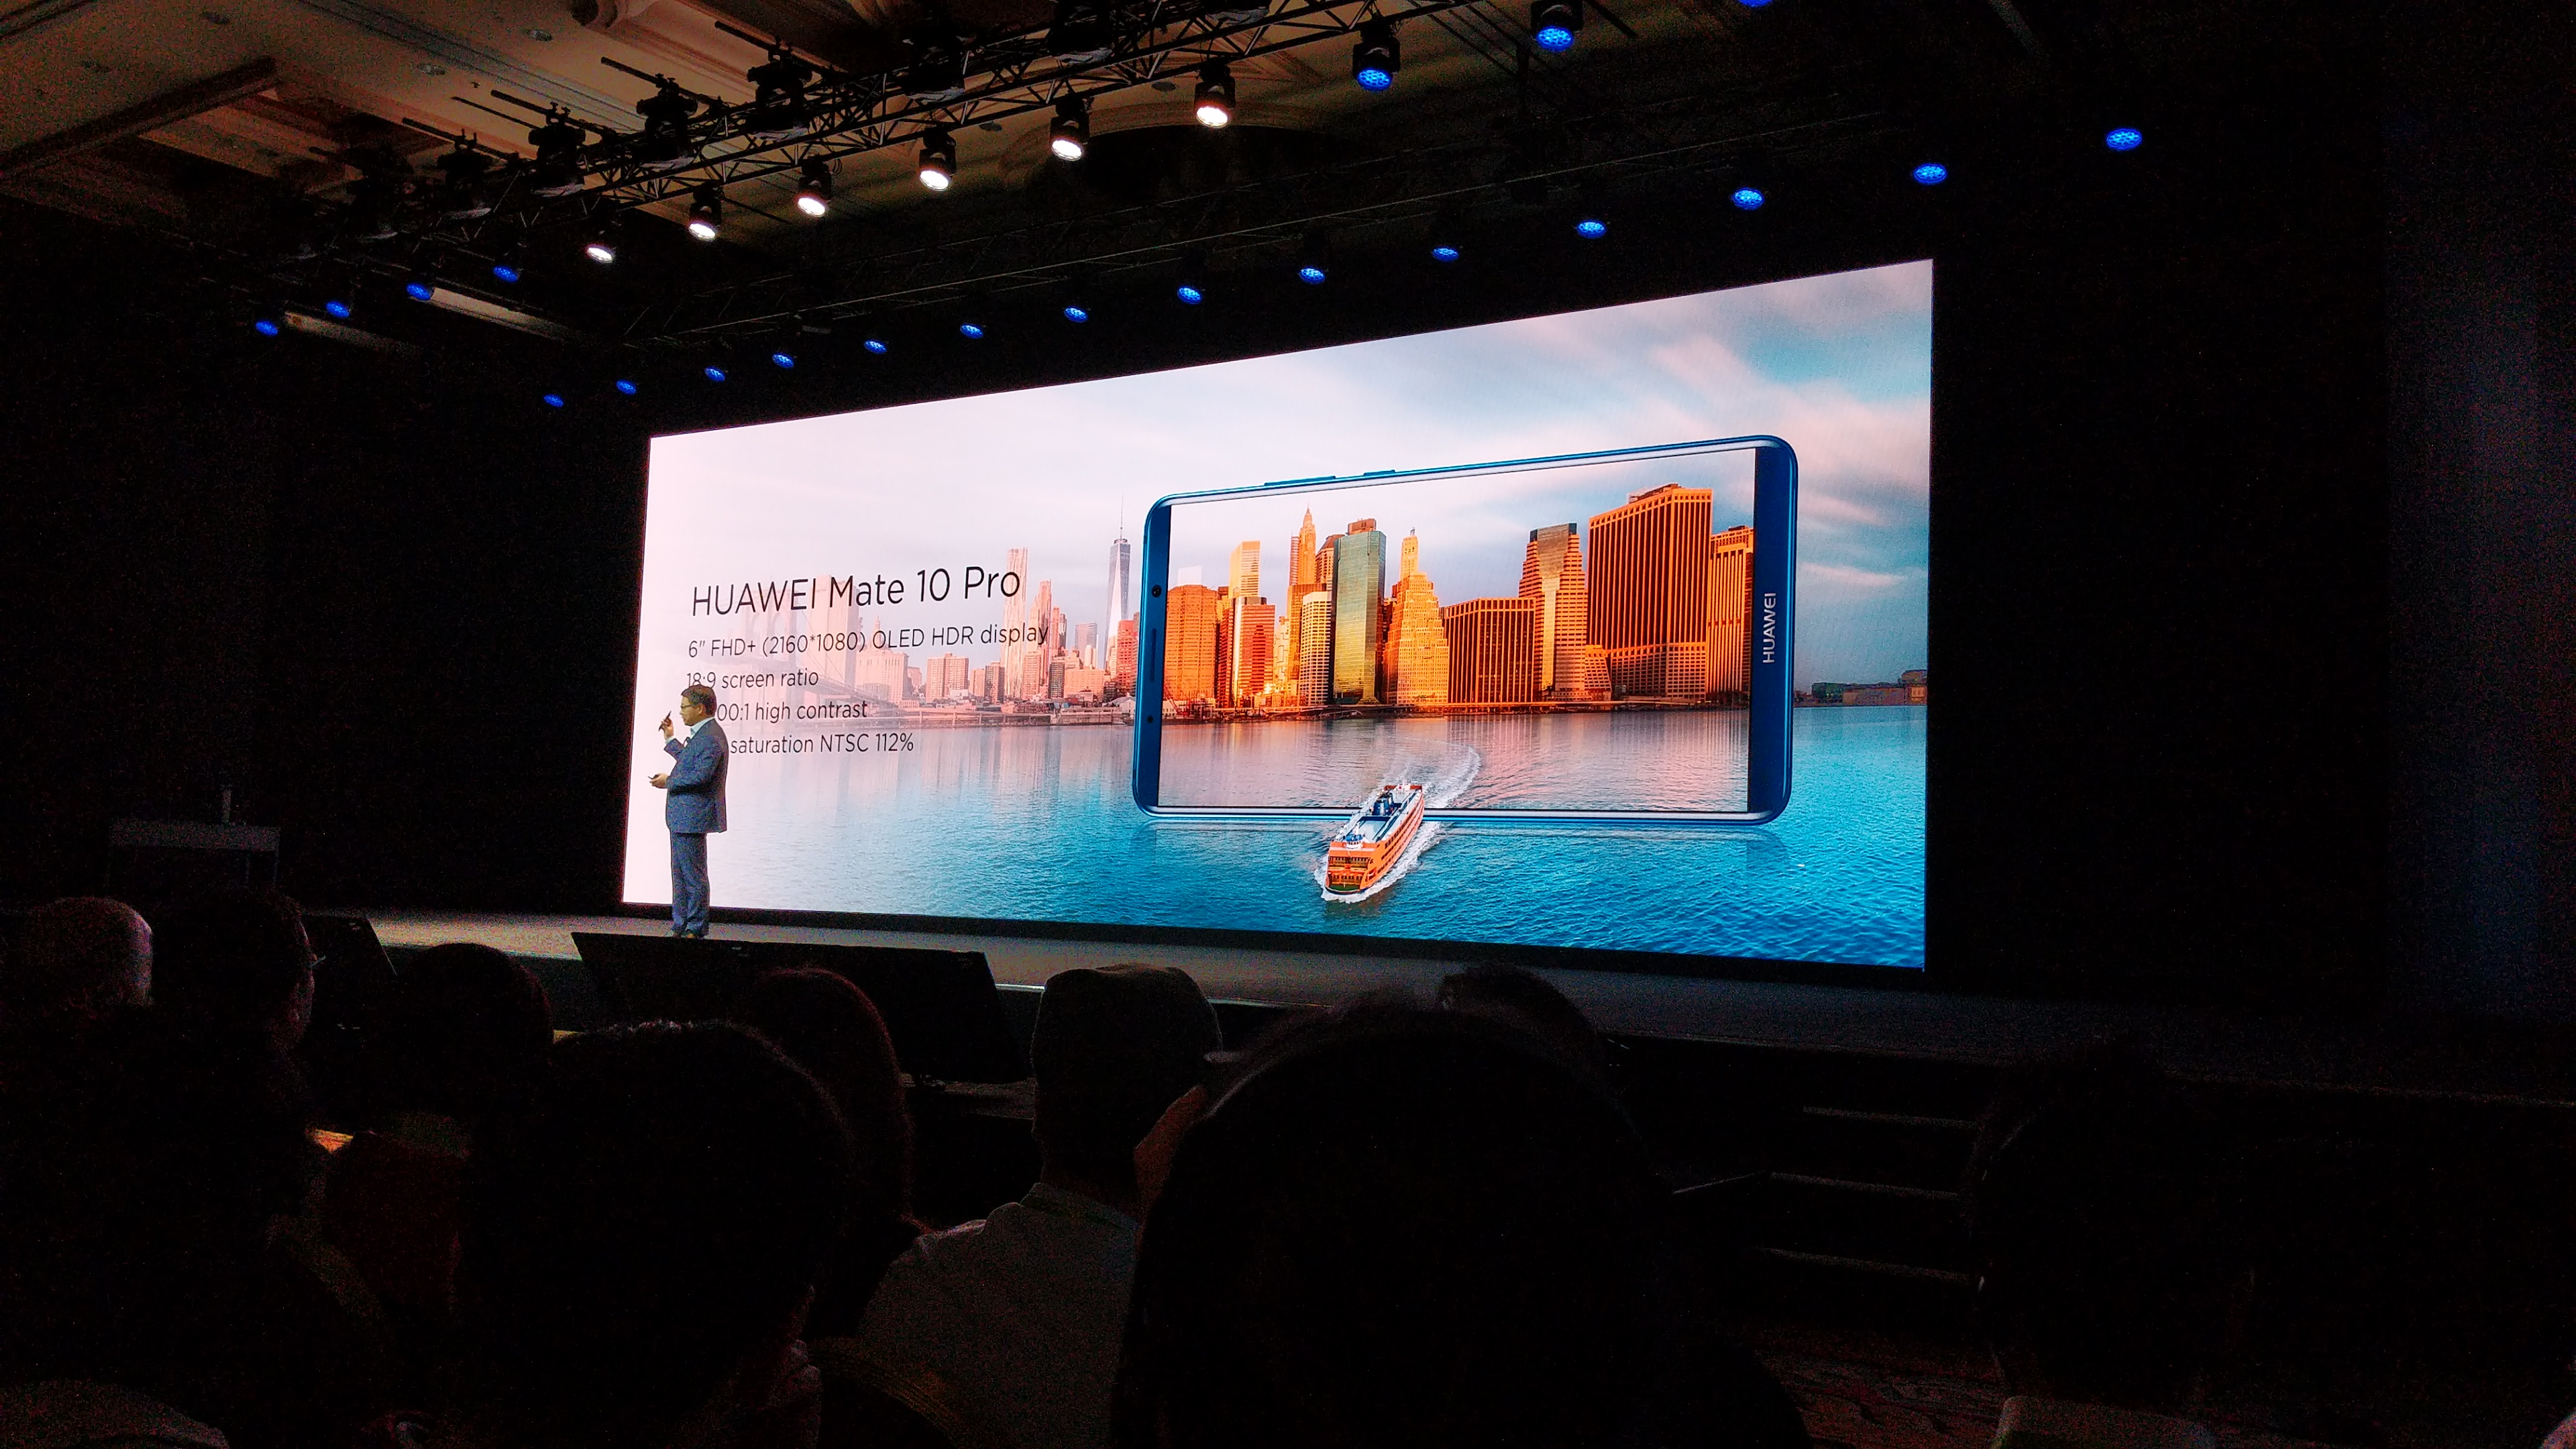 Huawei officially introduces the Mate 10 Pro to the US market